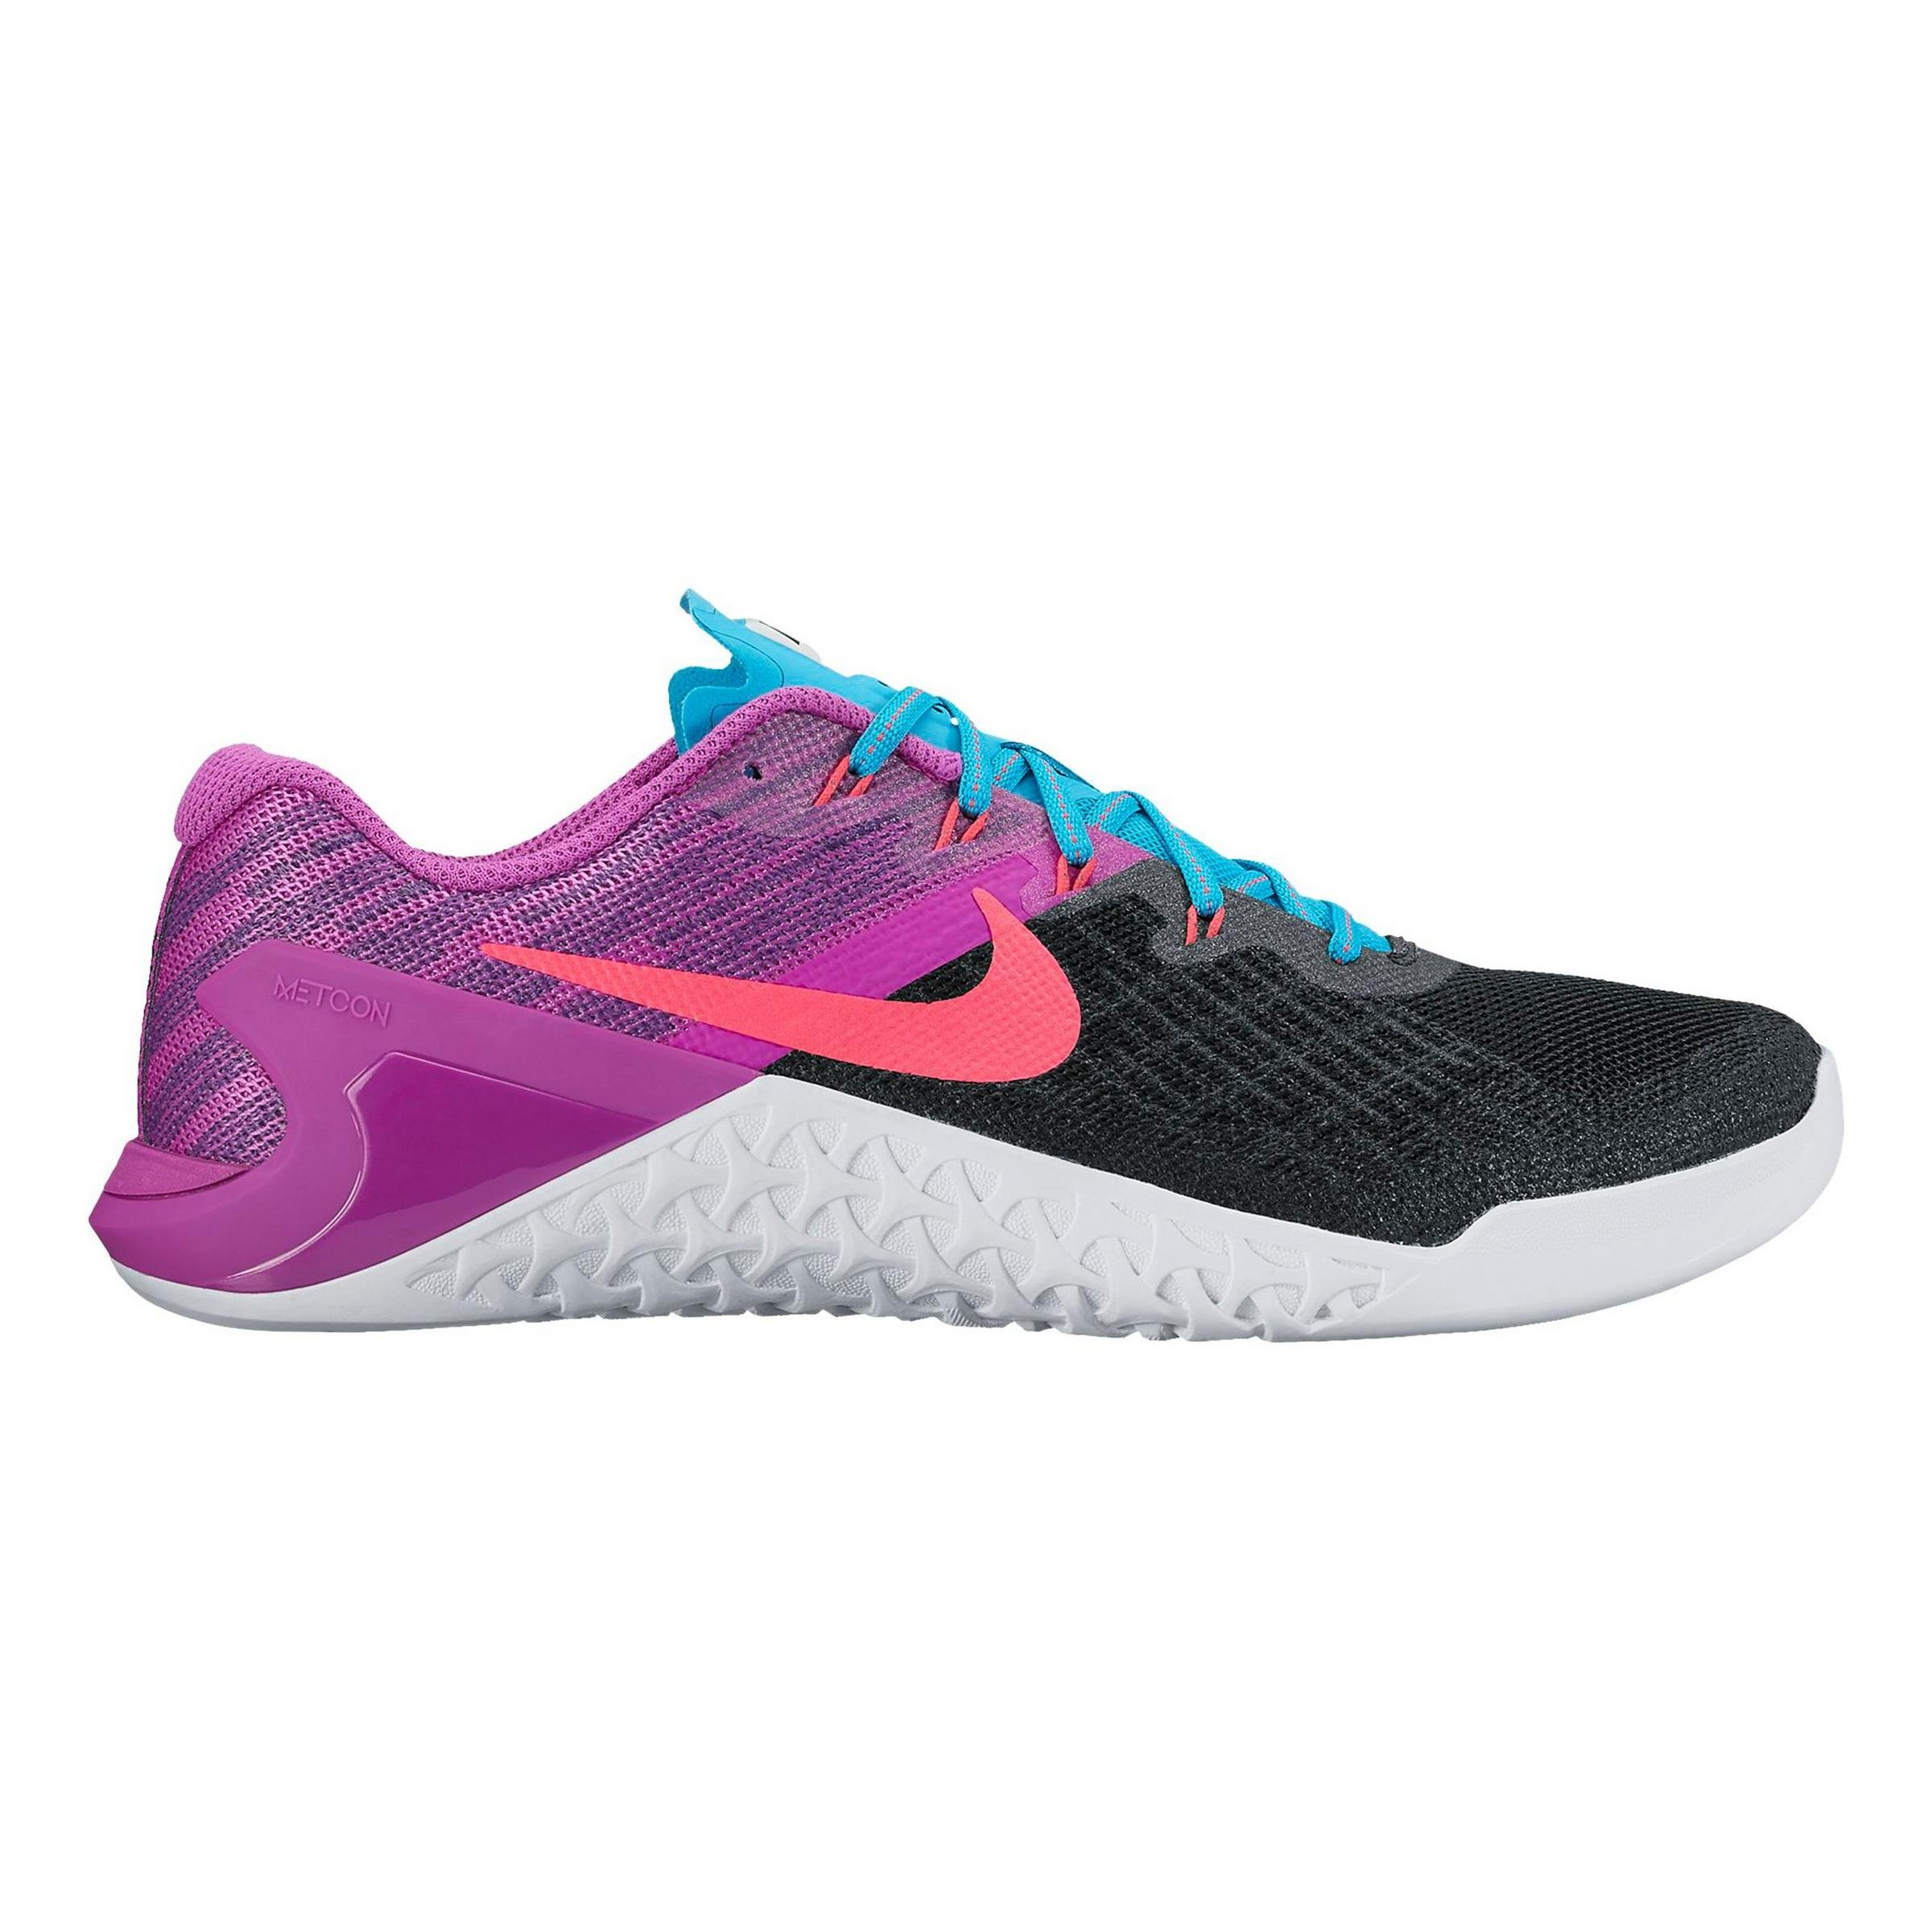 Nike Women's Metcon 3 Training Shoes Black / Racer Pink - Hyper Violet 849807-002 (7) by NIKE (Image #1)